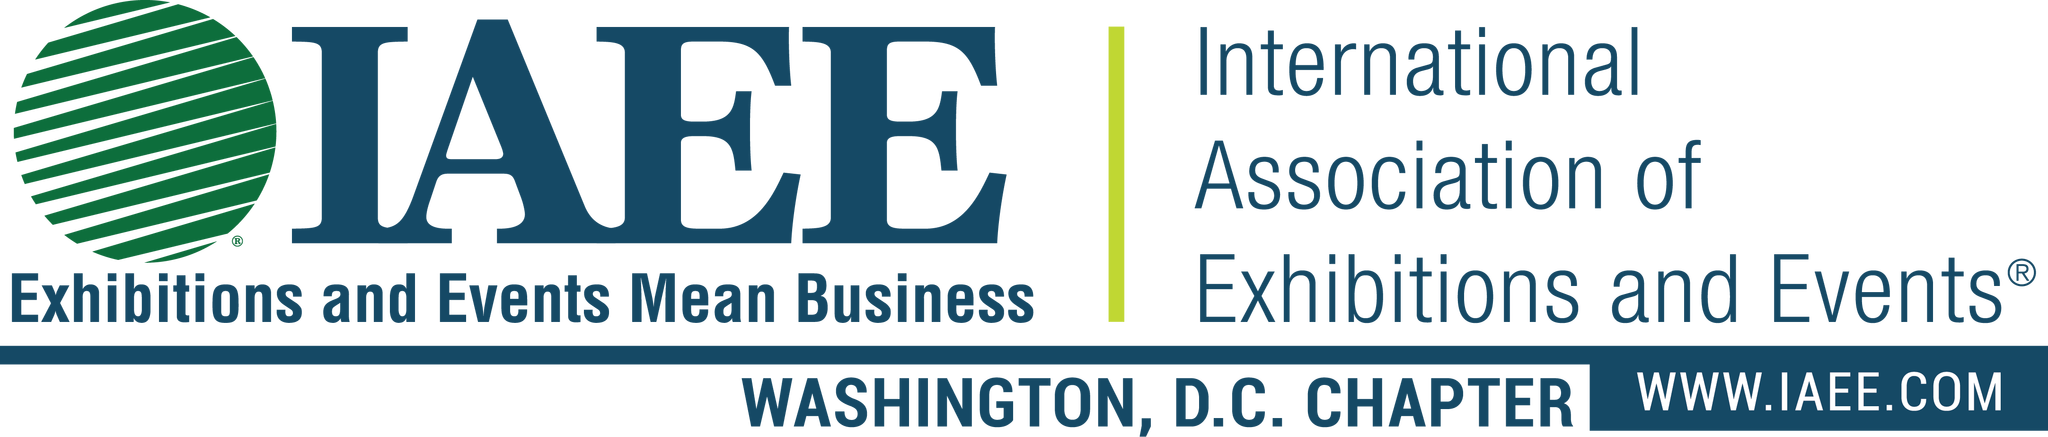 IAEE Exhibitions and Events Mean Business www.iaee.com/chapters